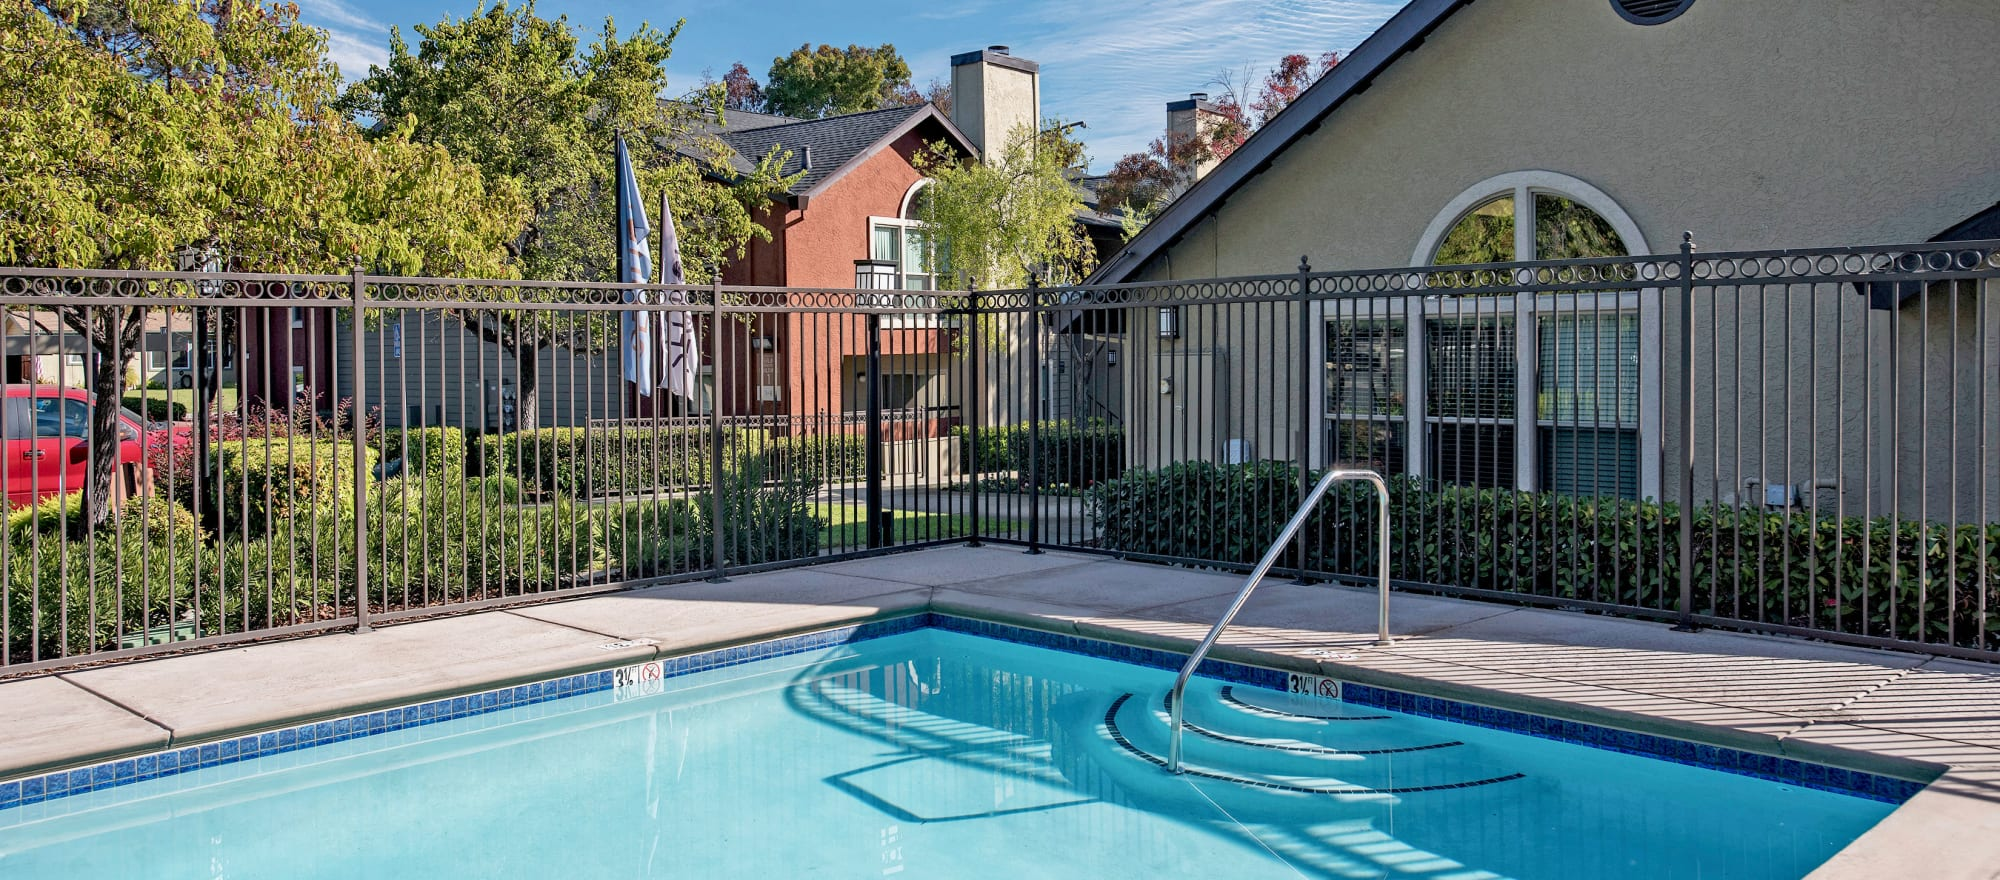 State-of-the-art swimming pool at Sterling Heights Apartment Homes in Benicia, California